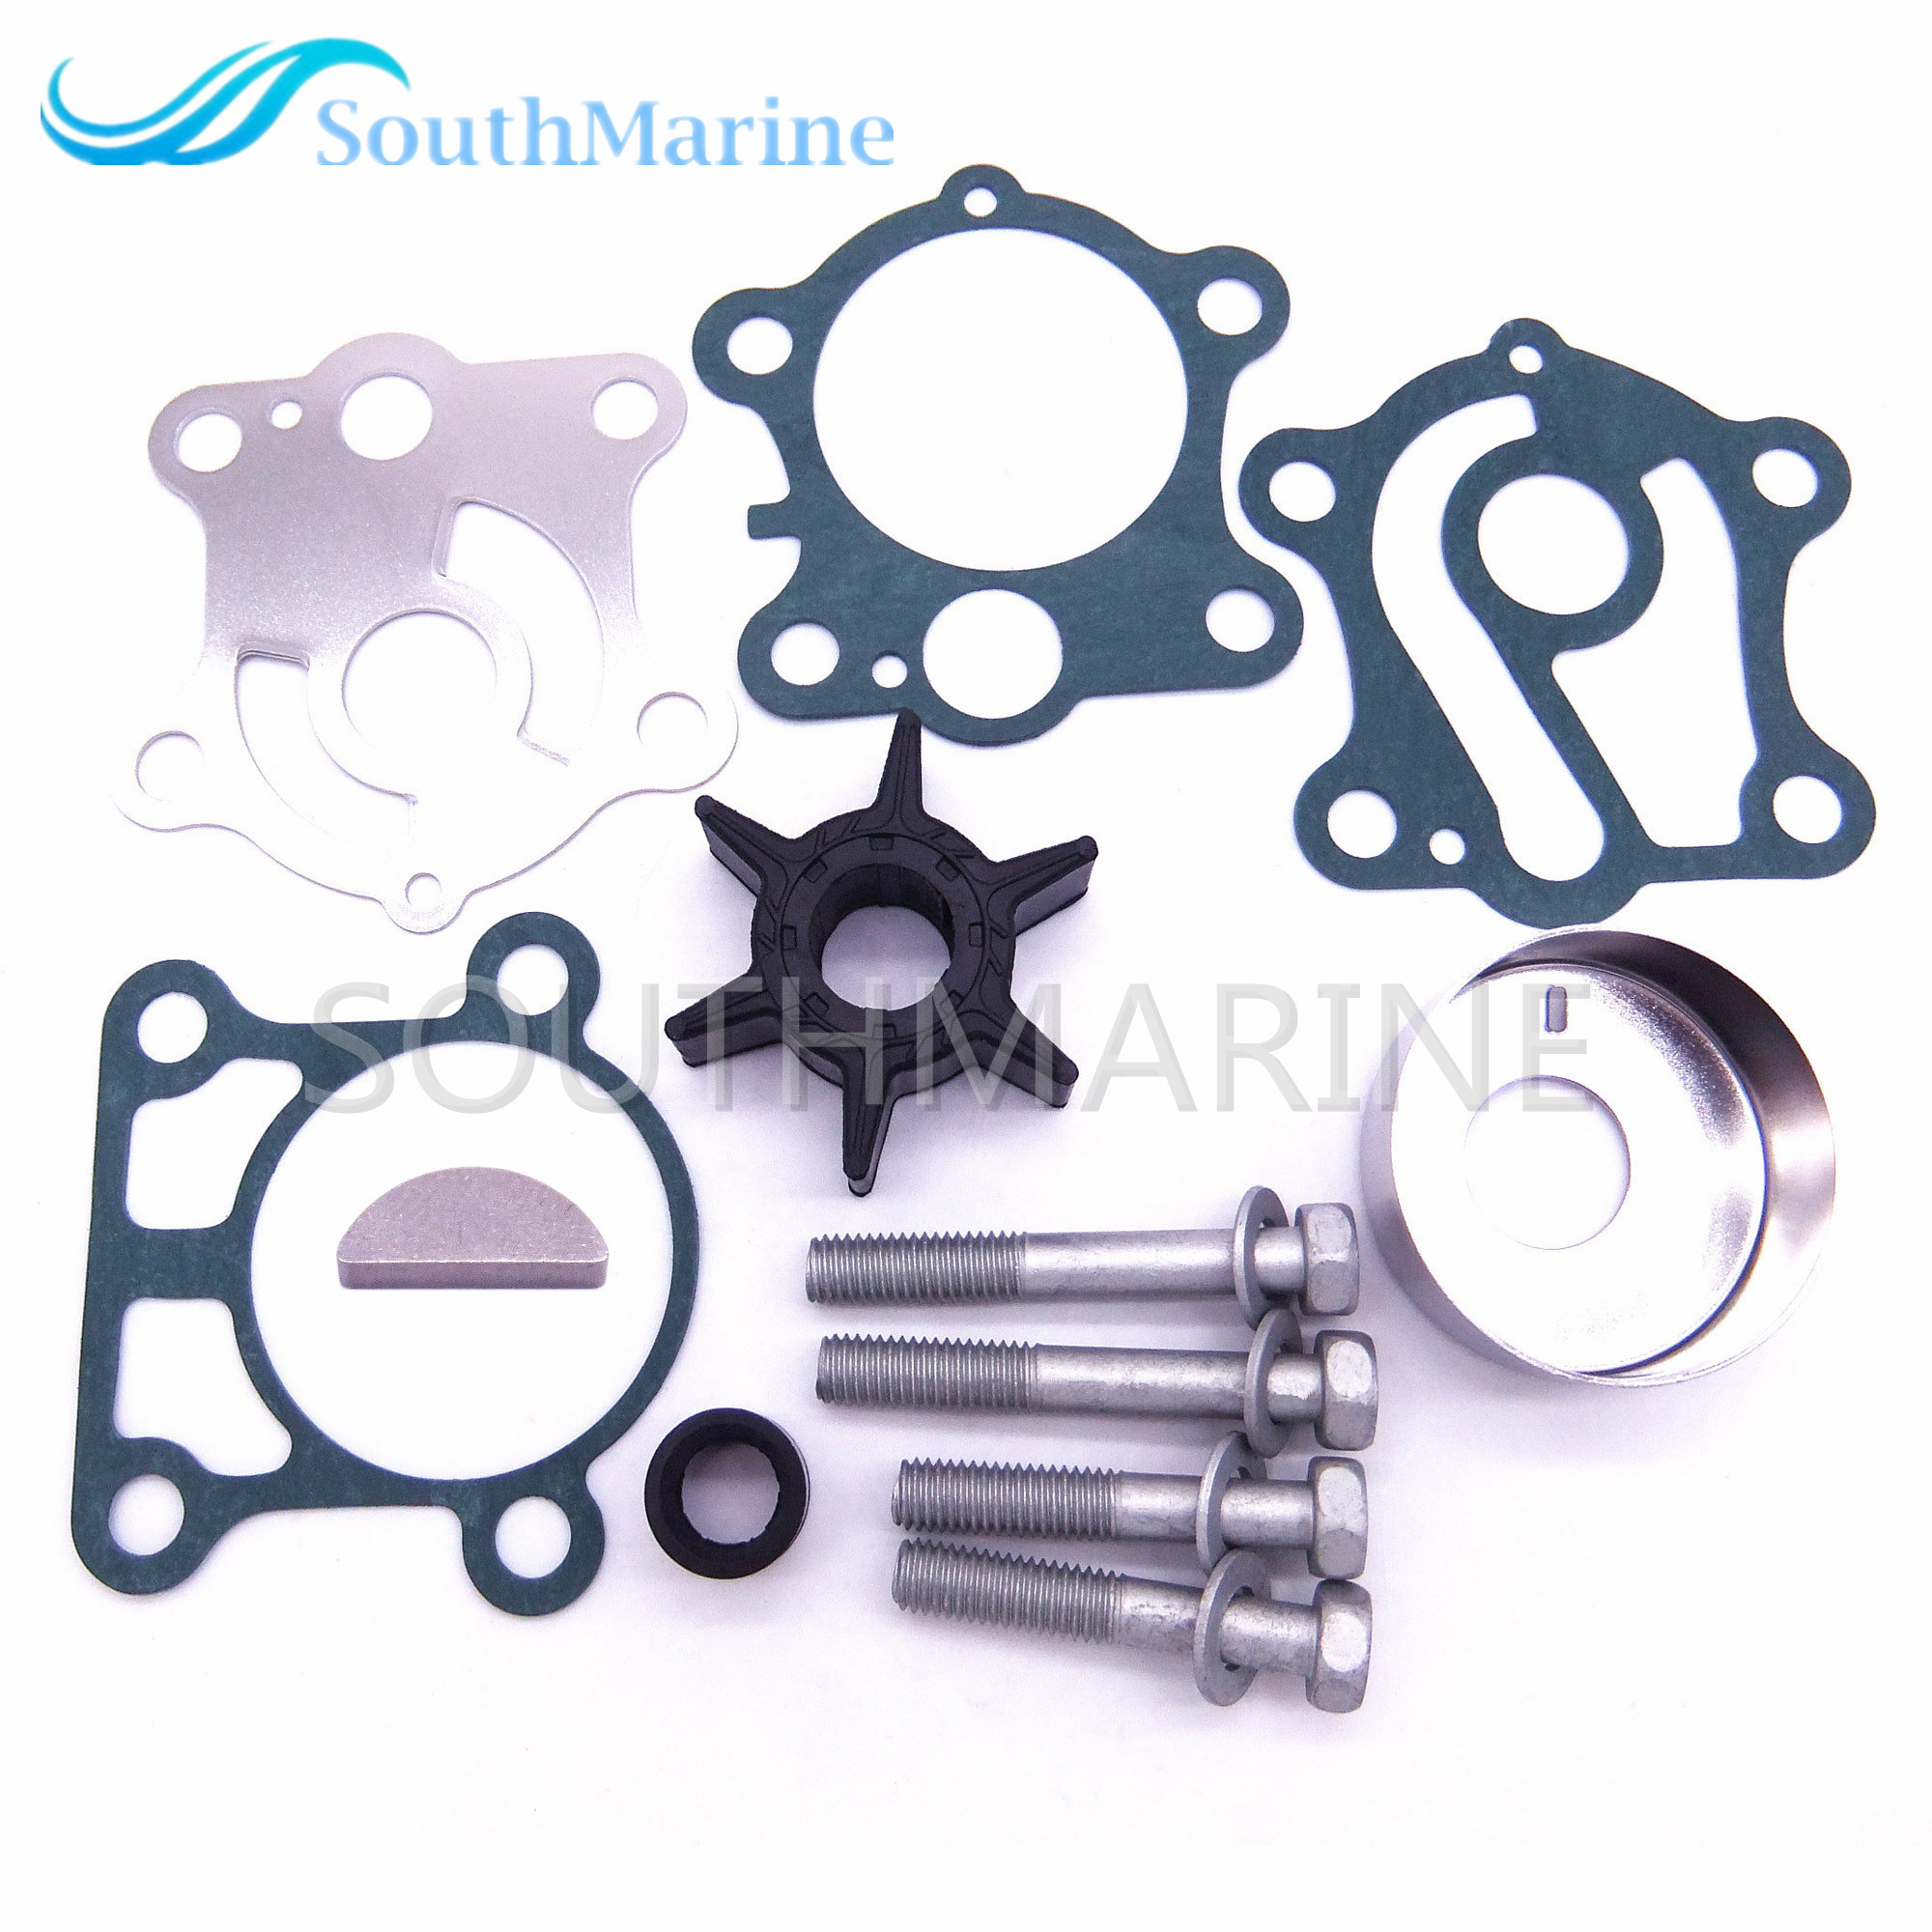 6H4-W0078 6H4-W0078-00 Water Pump Kit For Yamaha 40HP 50HP Boat Outboard Motors